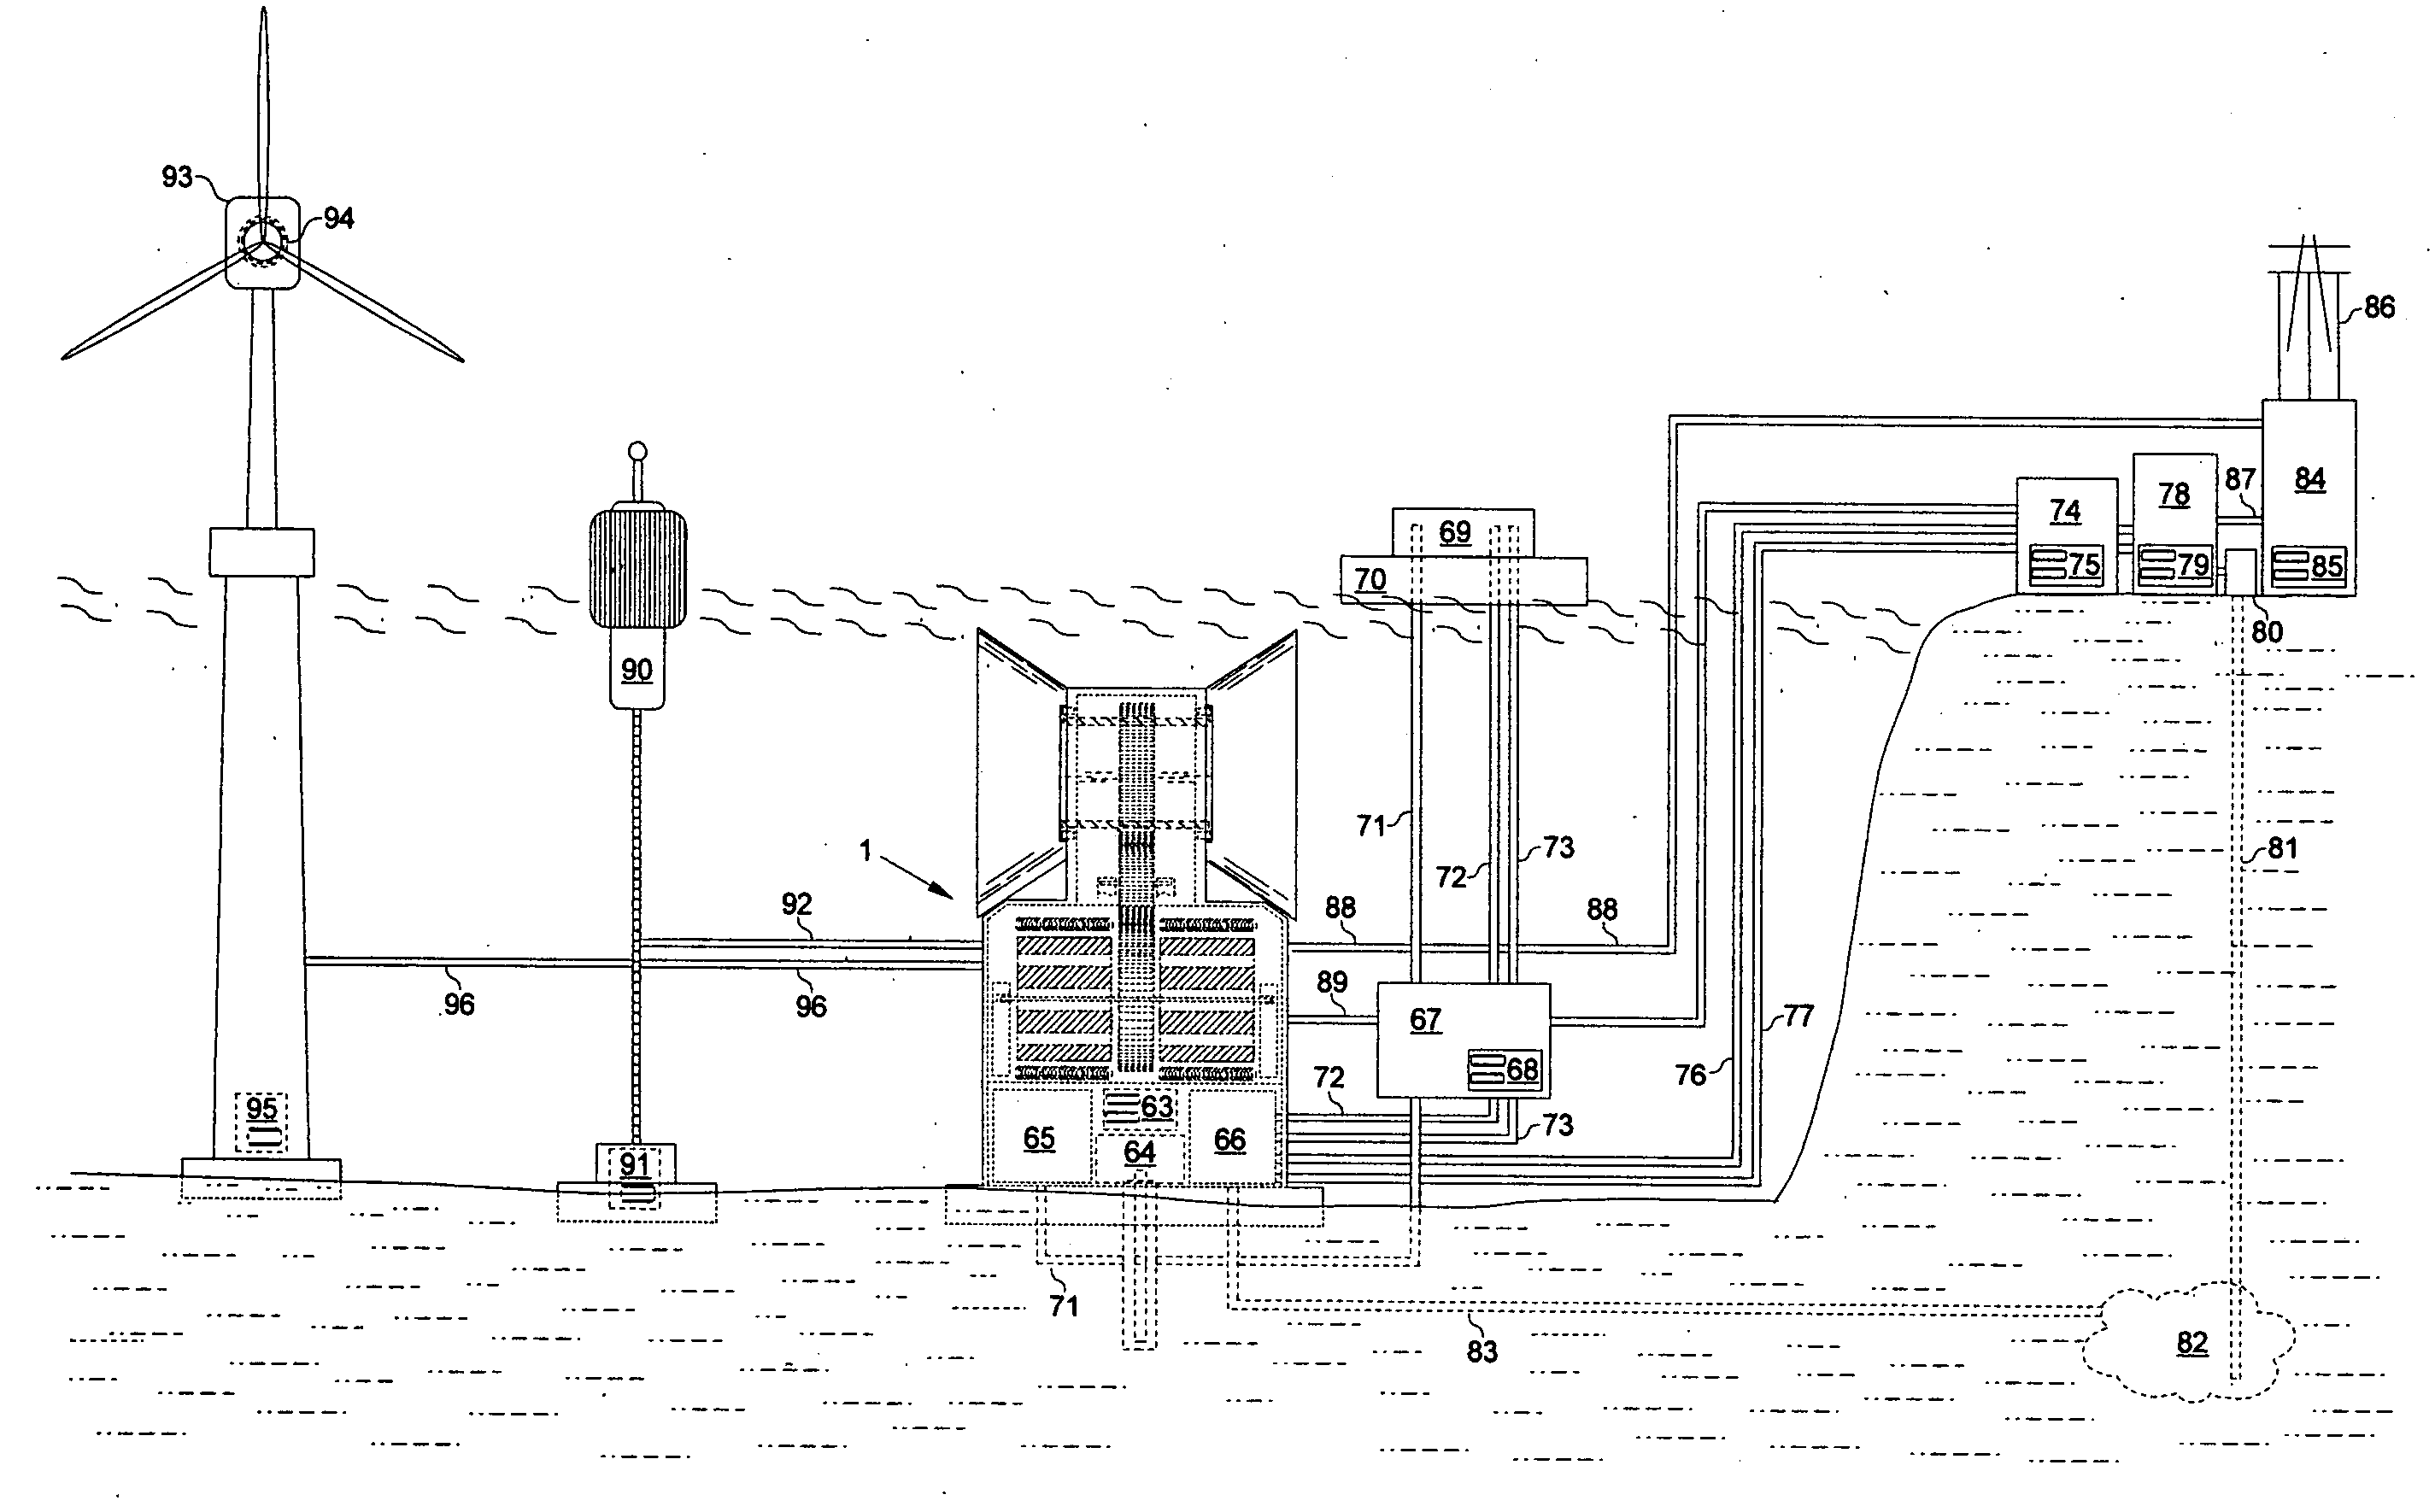 US20100258449 besides prepperwaterstorage additionally Gn 5 Wqa Certified Reverse Osmosis System further Portable Water Filter Diagram besides Sand And Gravel Water Filter System. on water purification systems for well